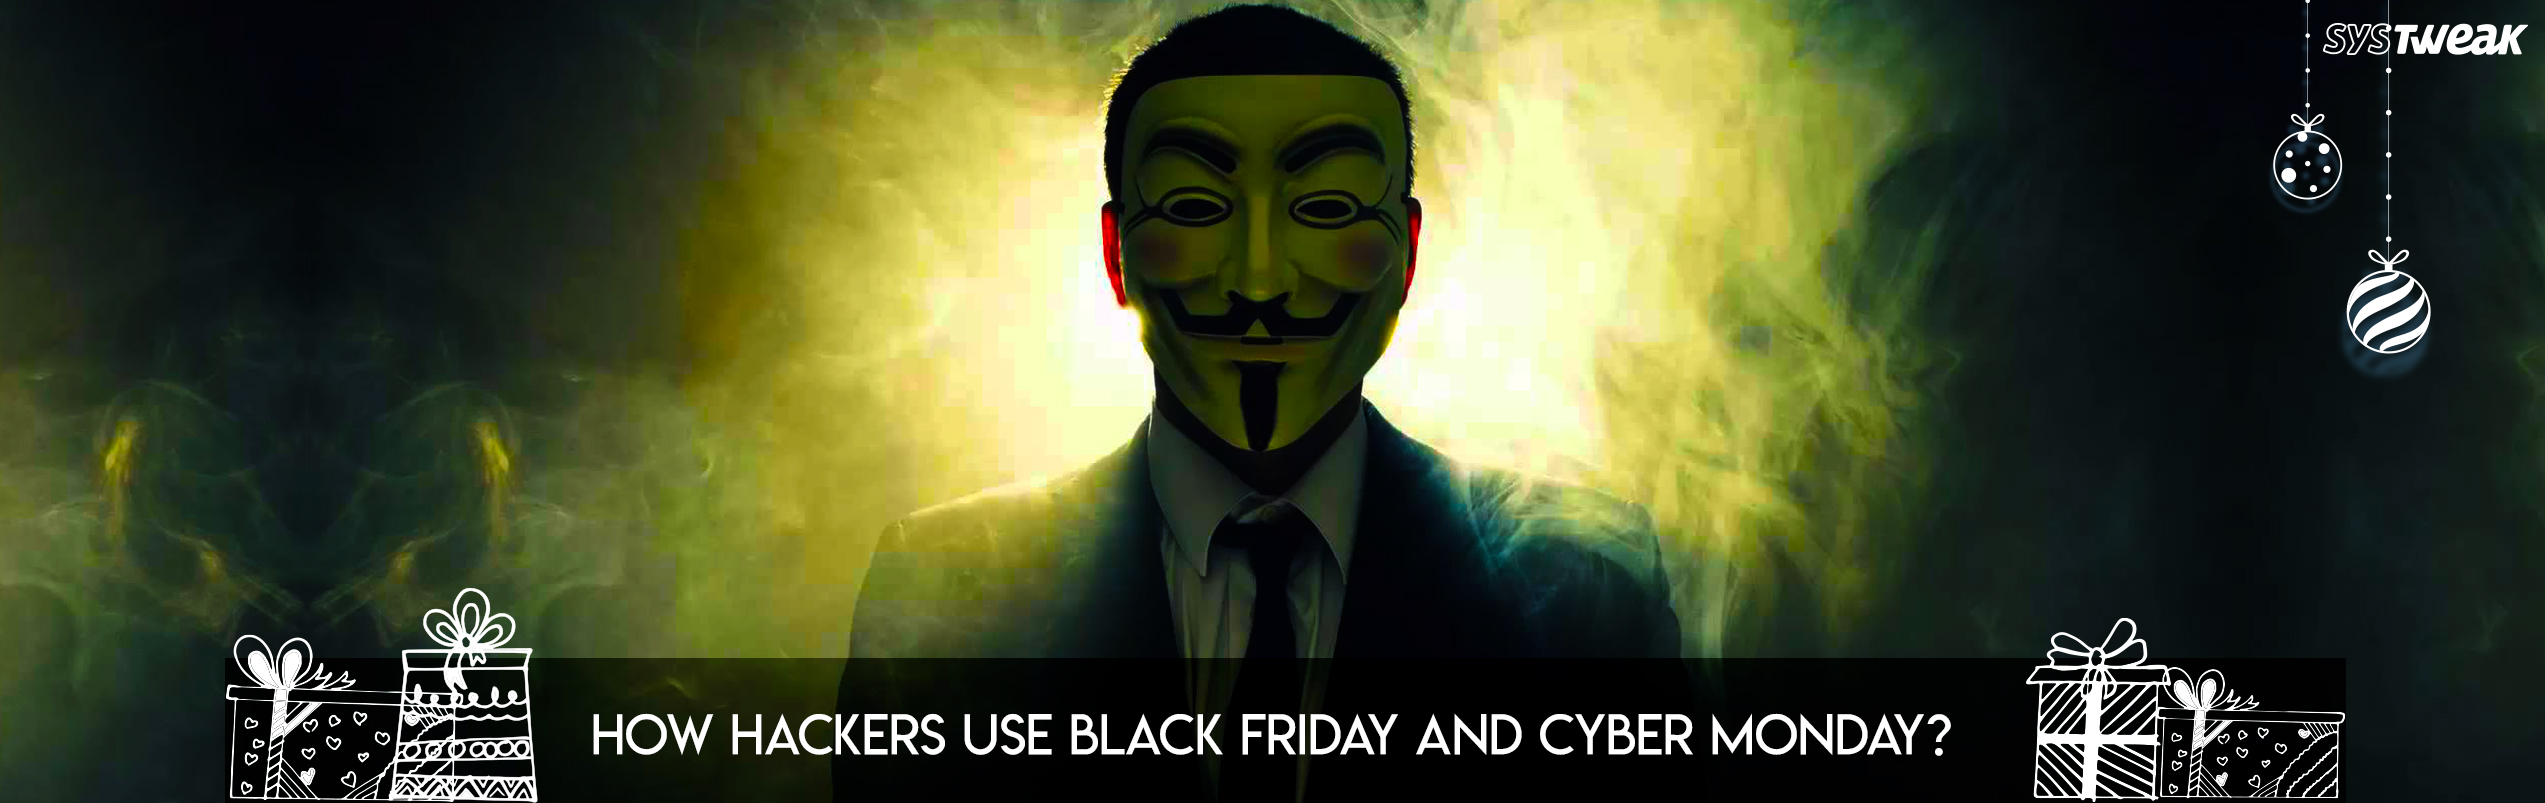 Why hackers love Black Friday and Cyber Monday